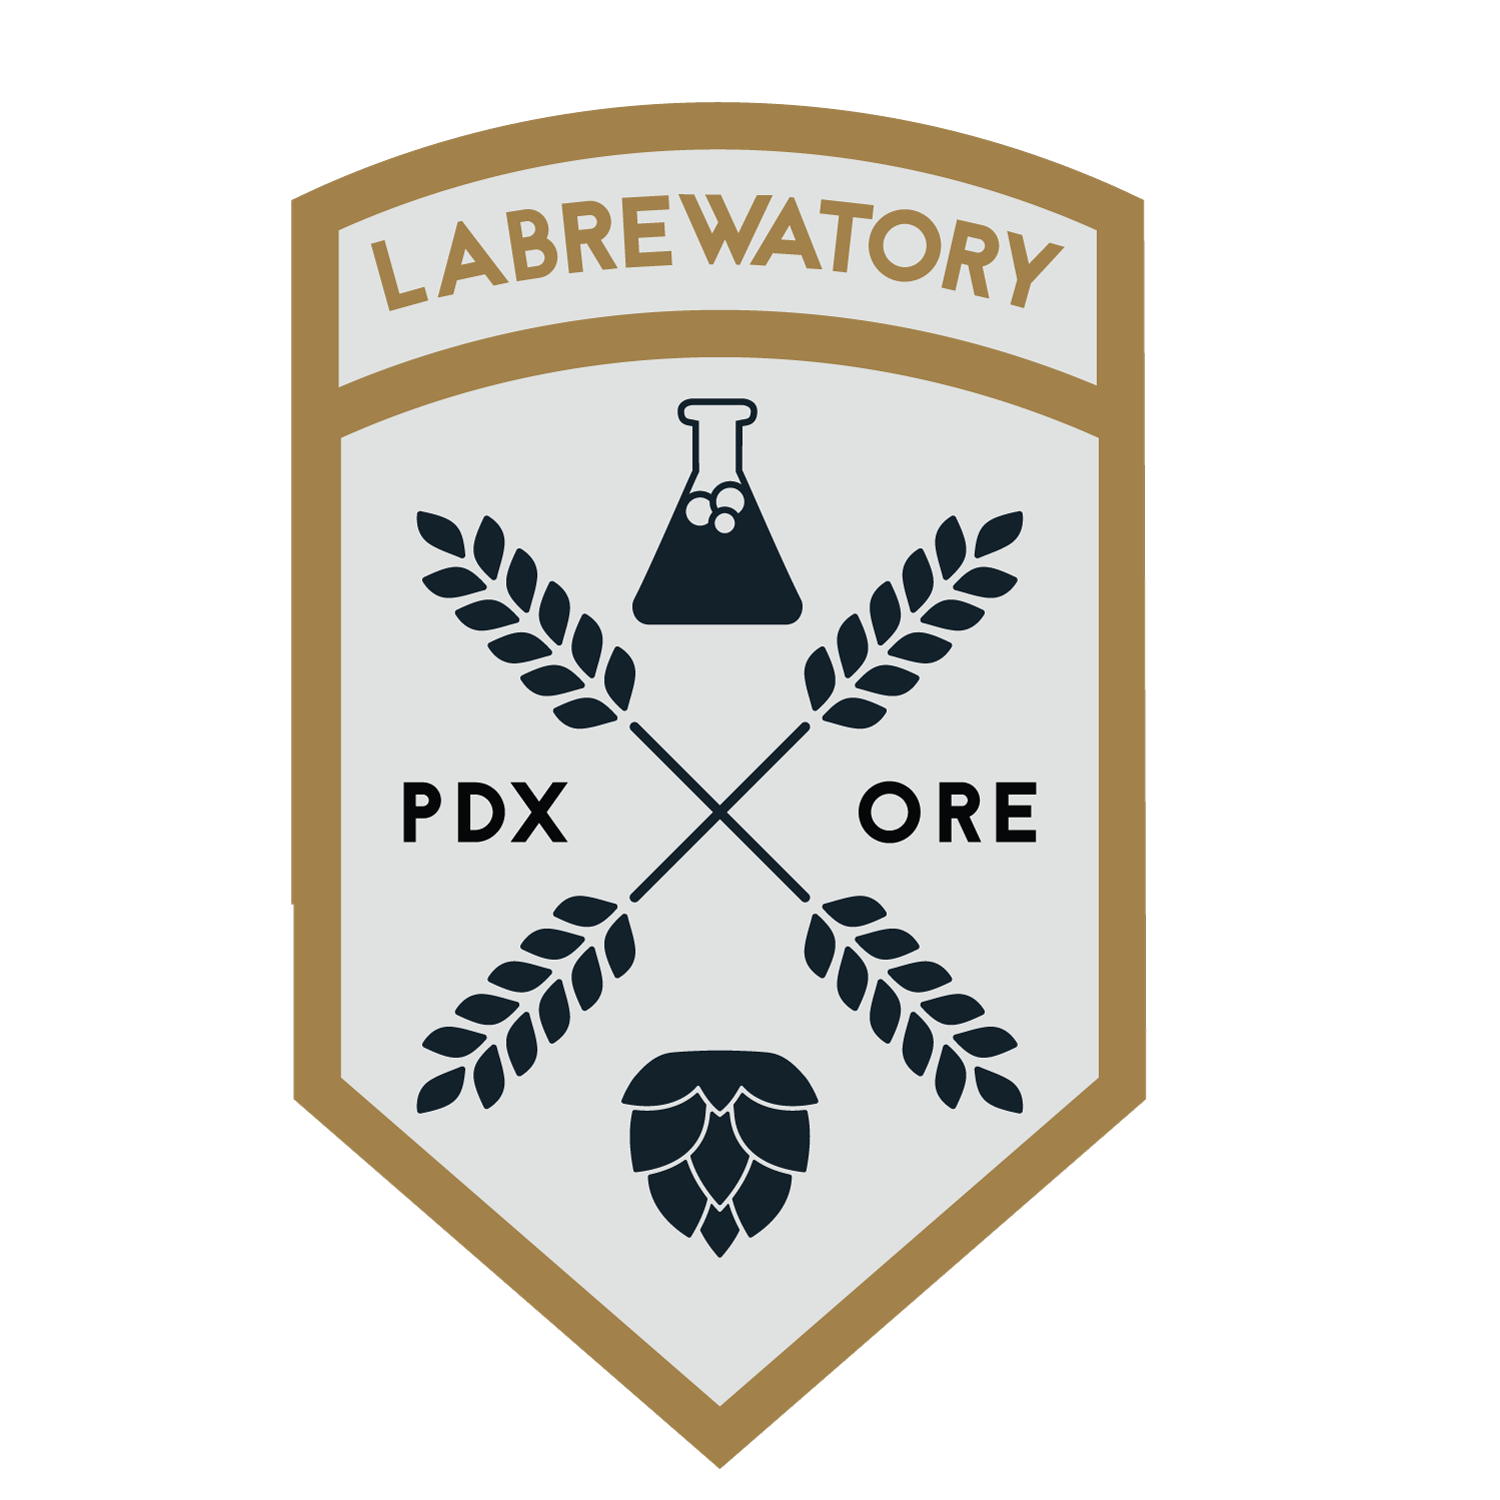 The Labrewatory